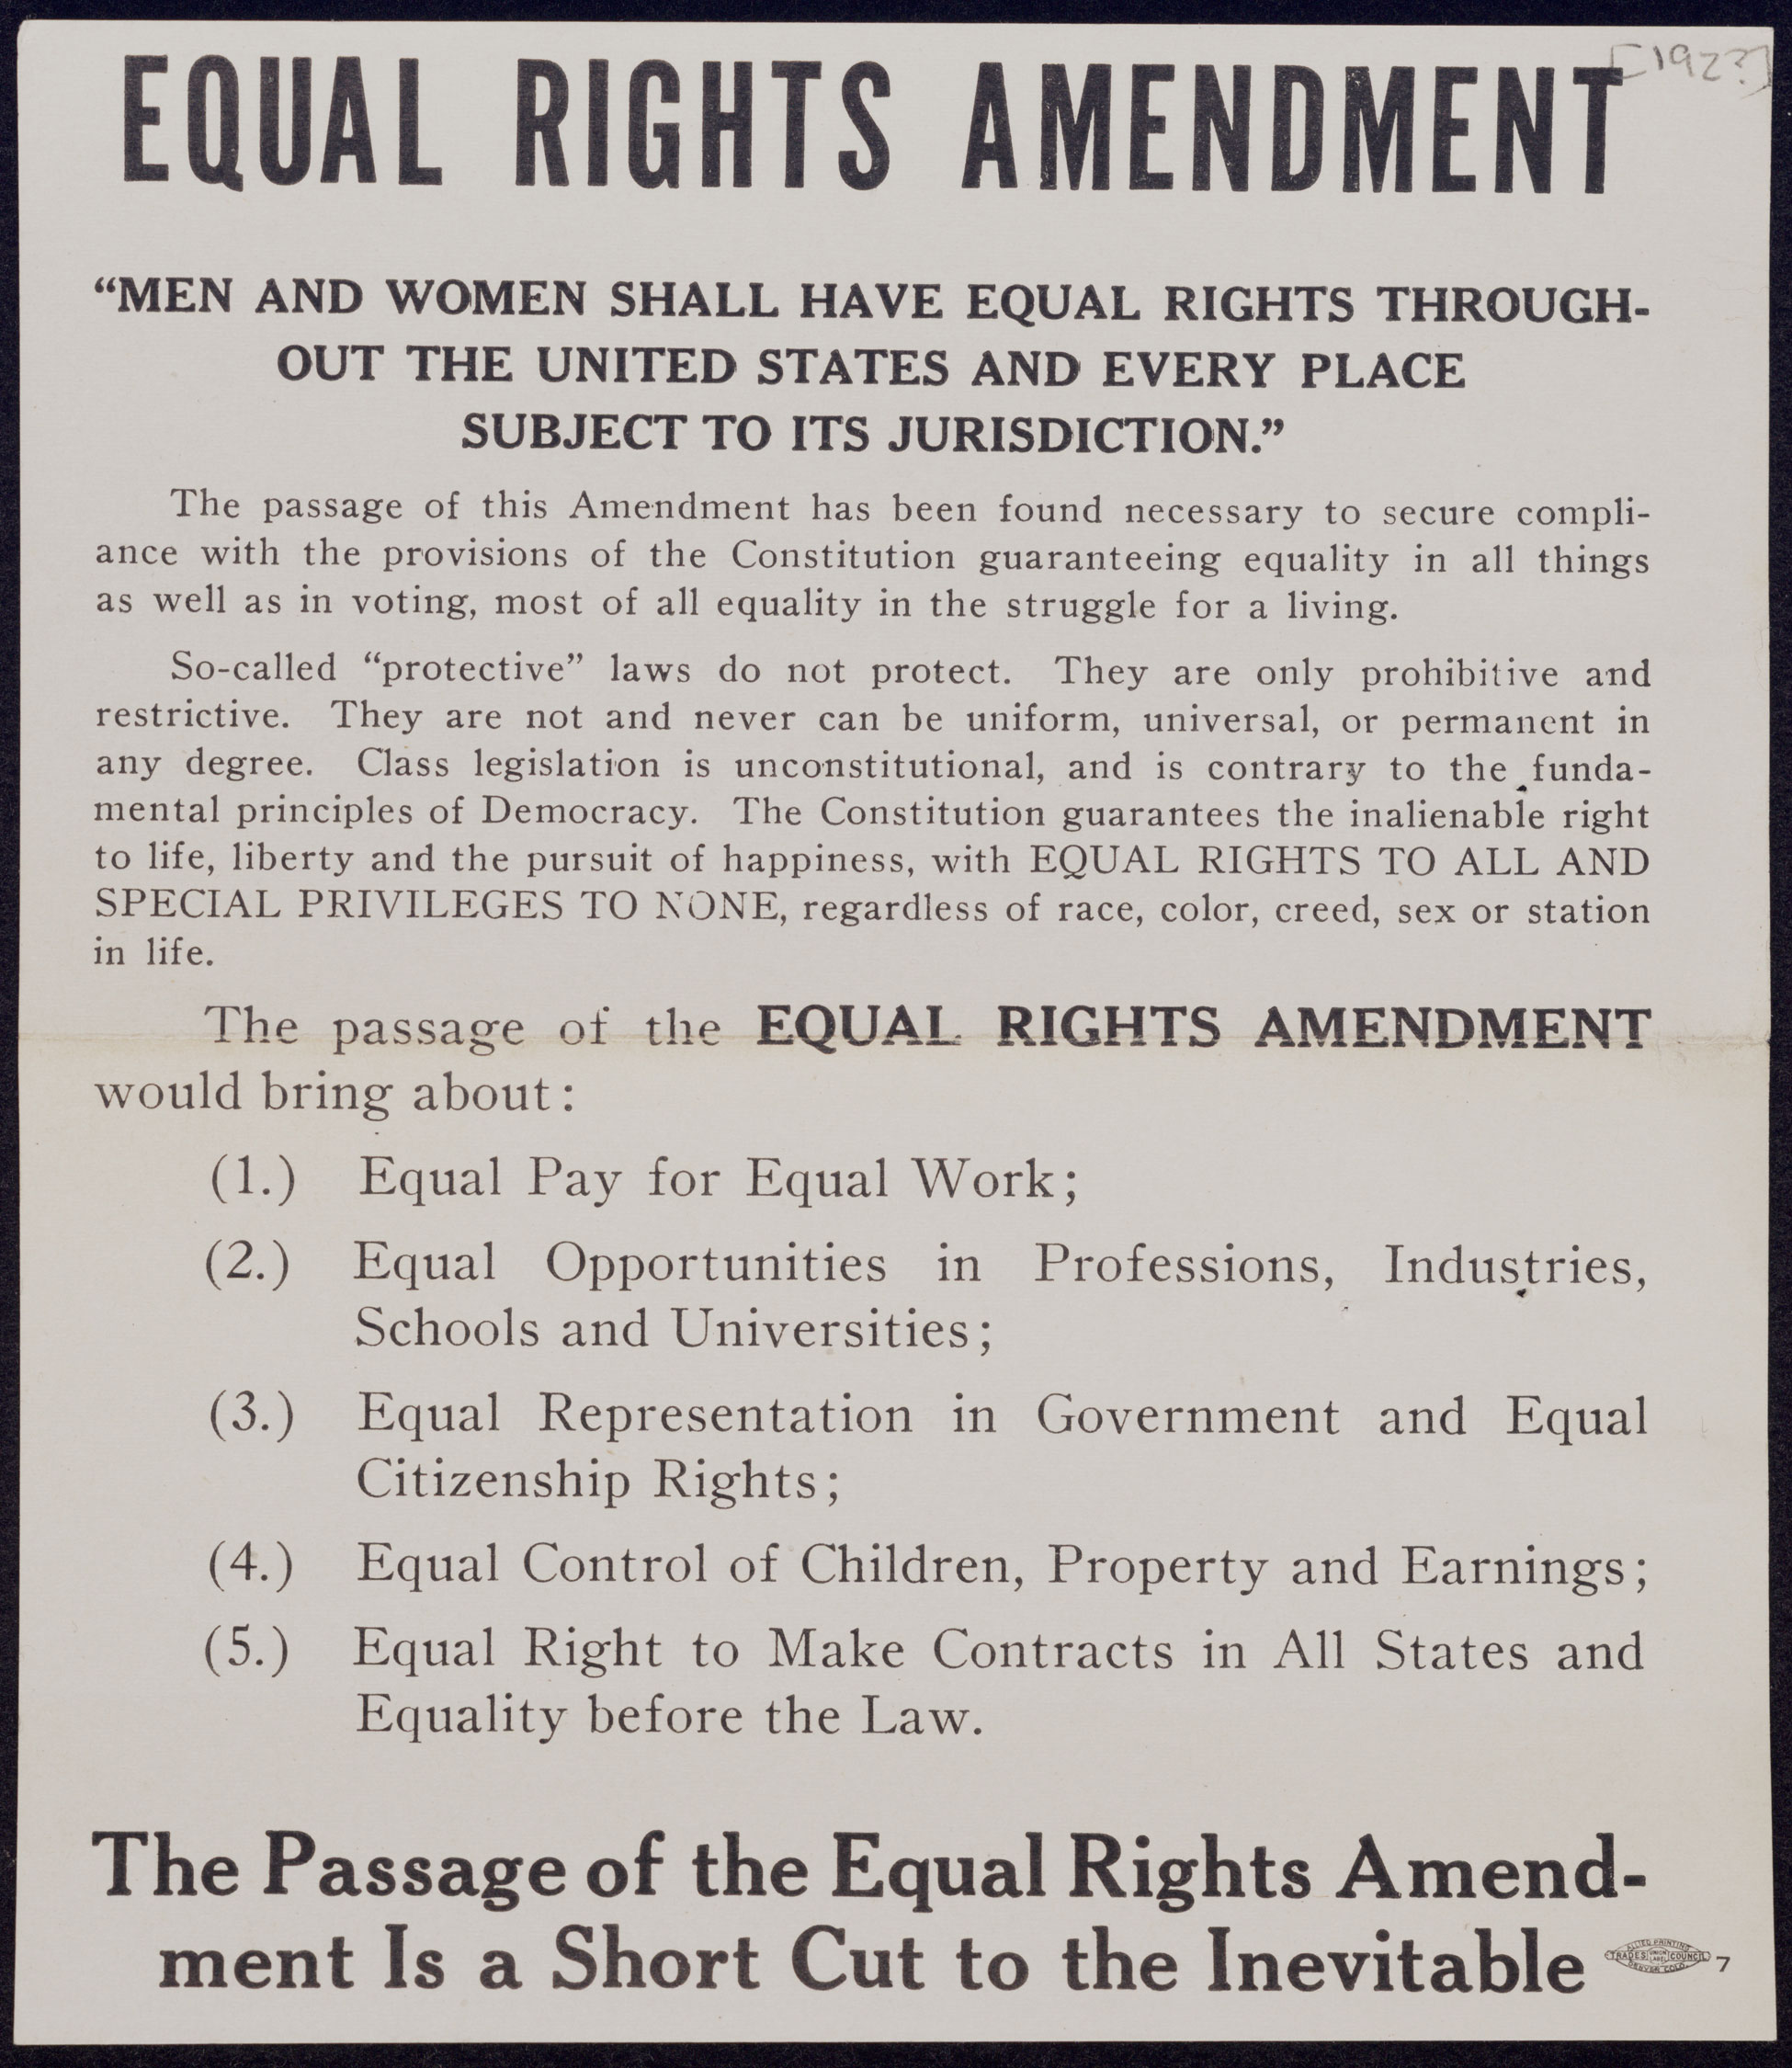 Handbill supporting the Equal Rights Amendment from the 1920s.